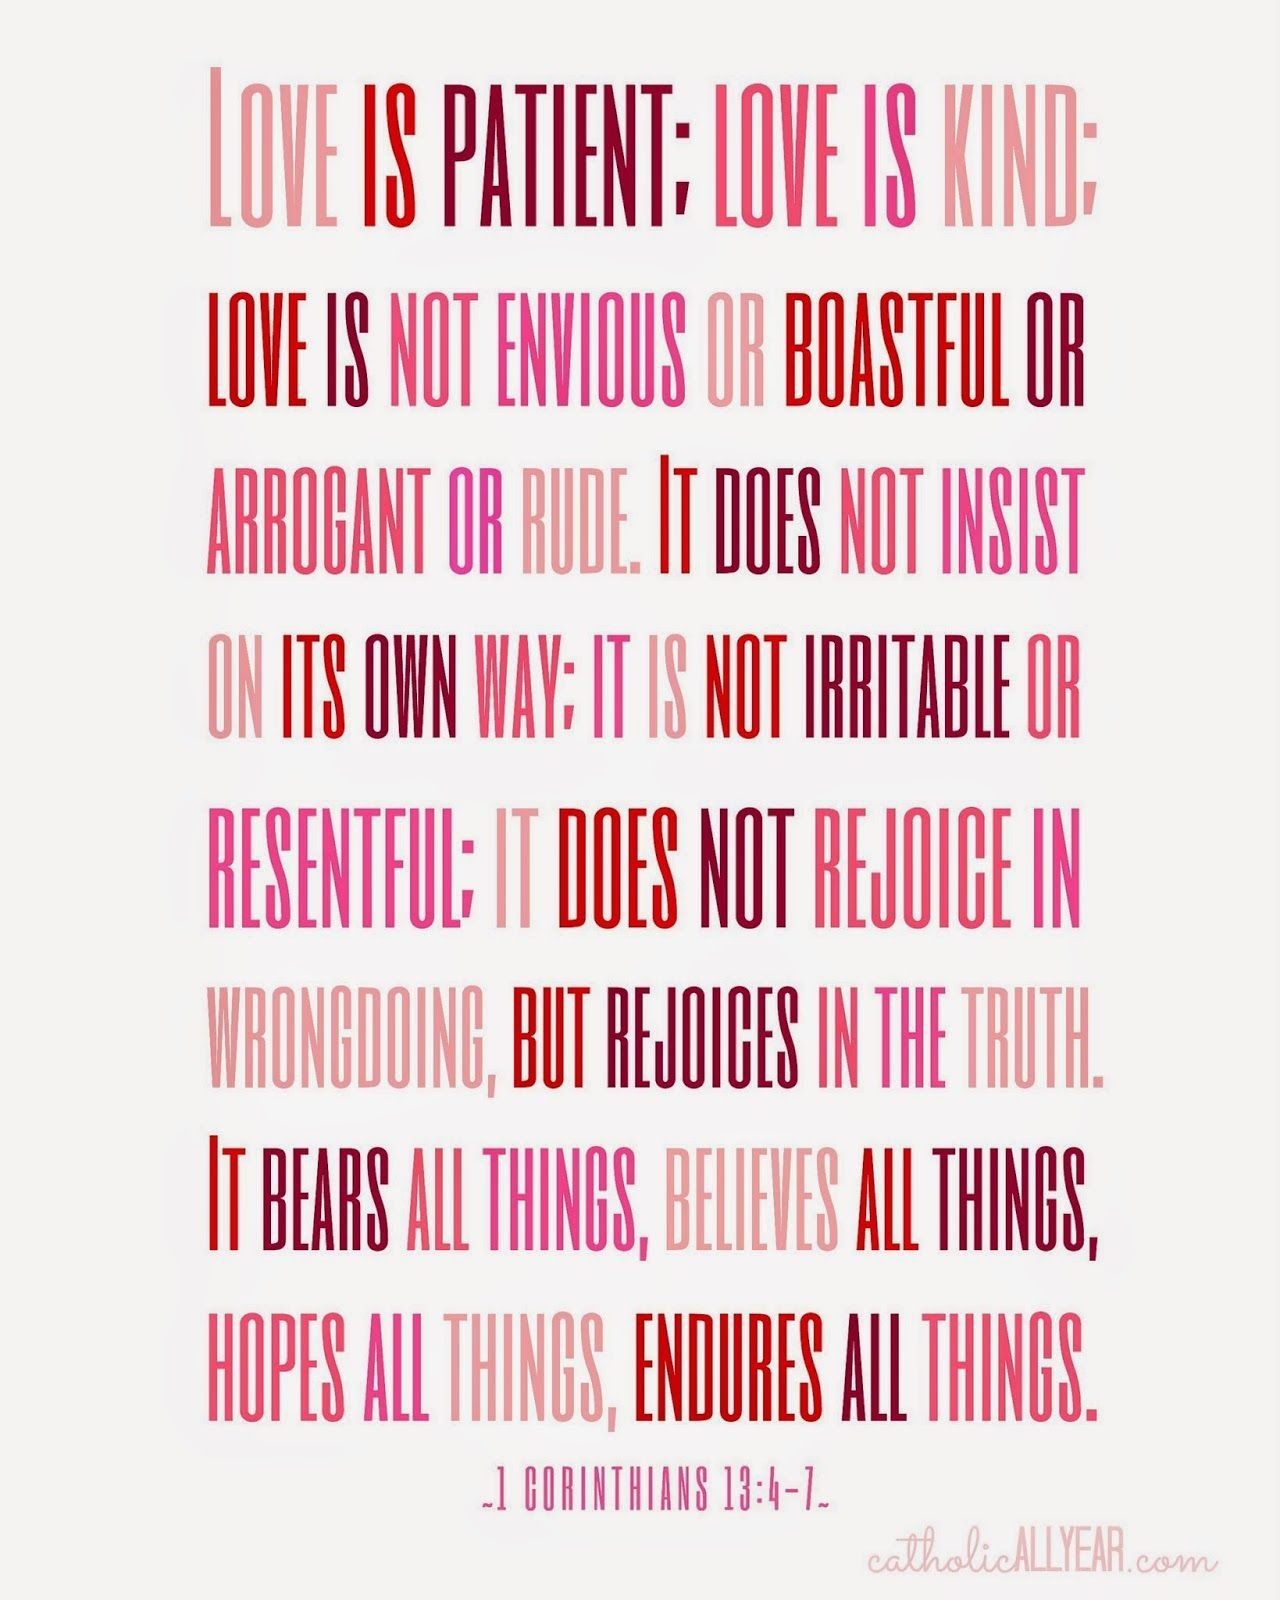 Seven Free Printable Catholic Valentines | Printable Prayers - Love Is Patient Love Is Kind Free Printable